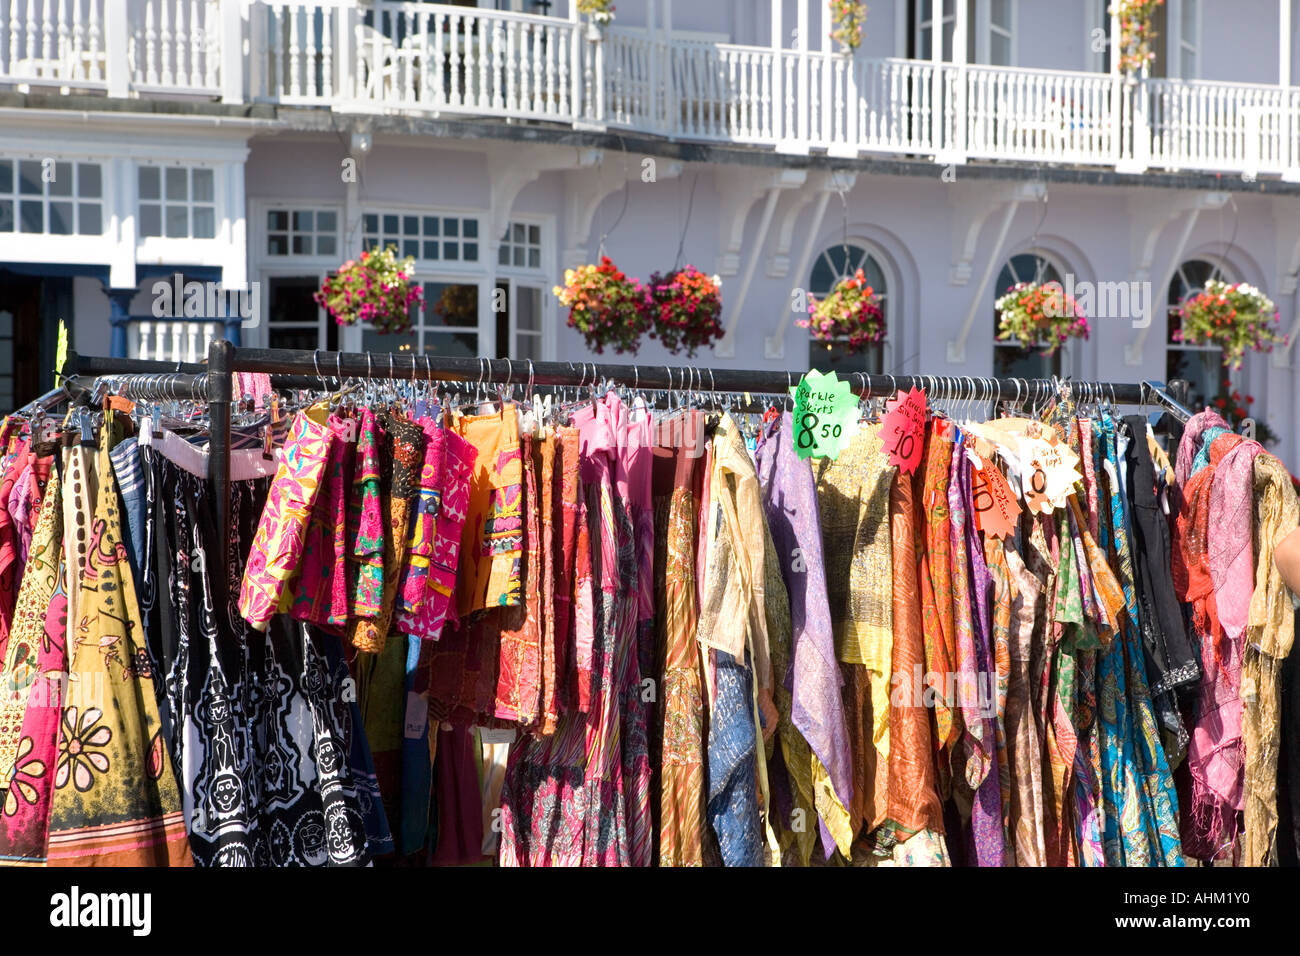 Skirts for sale on a rail on Sidmouth seafront during International Festival Devon England - Stock Image